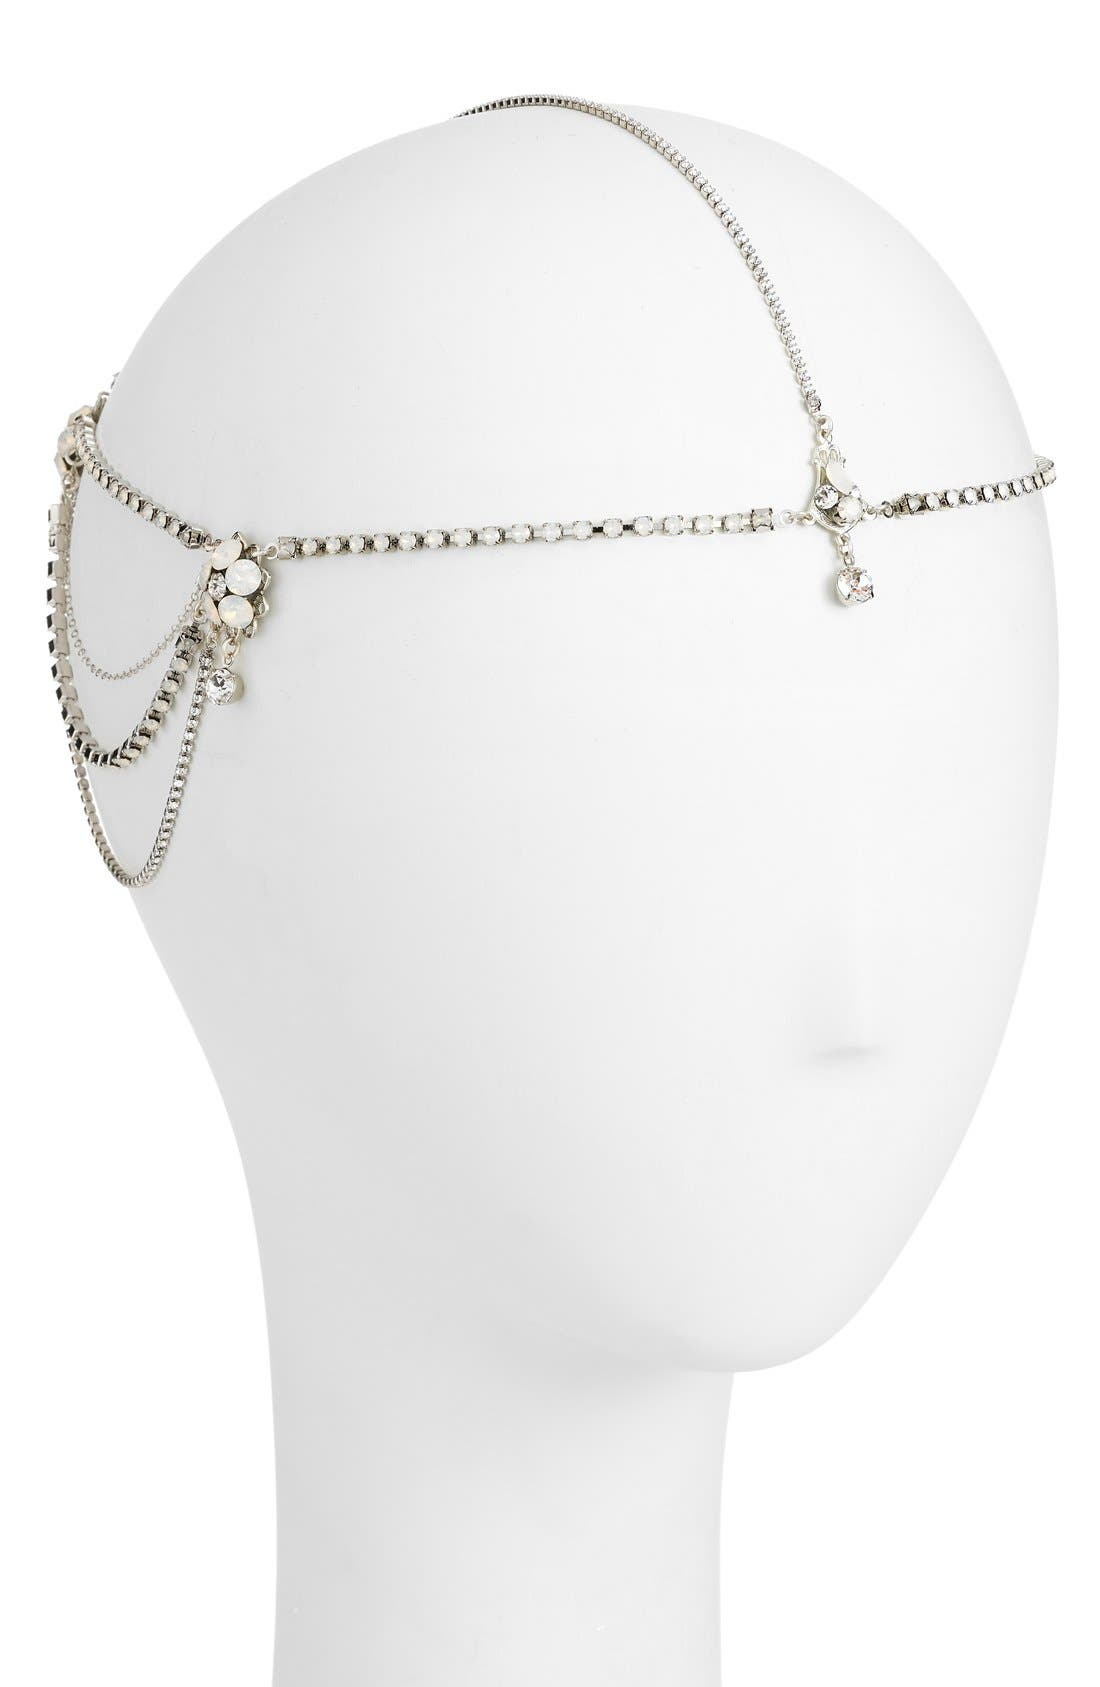 'Madeline' Floral Crystal Hair Chain,                             Alternate thumbnail 4, color,                             Crystal/ White Opal